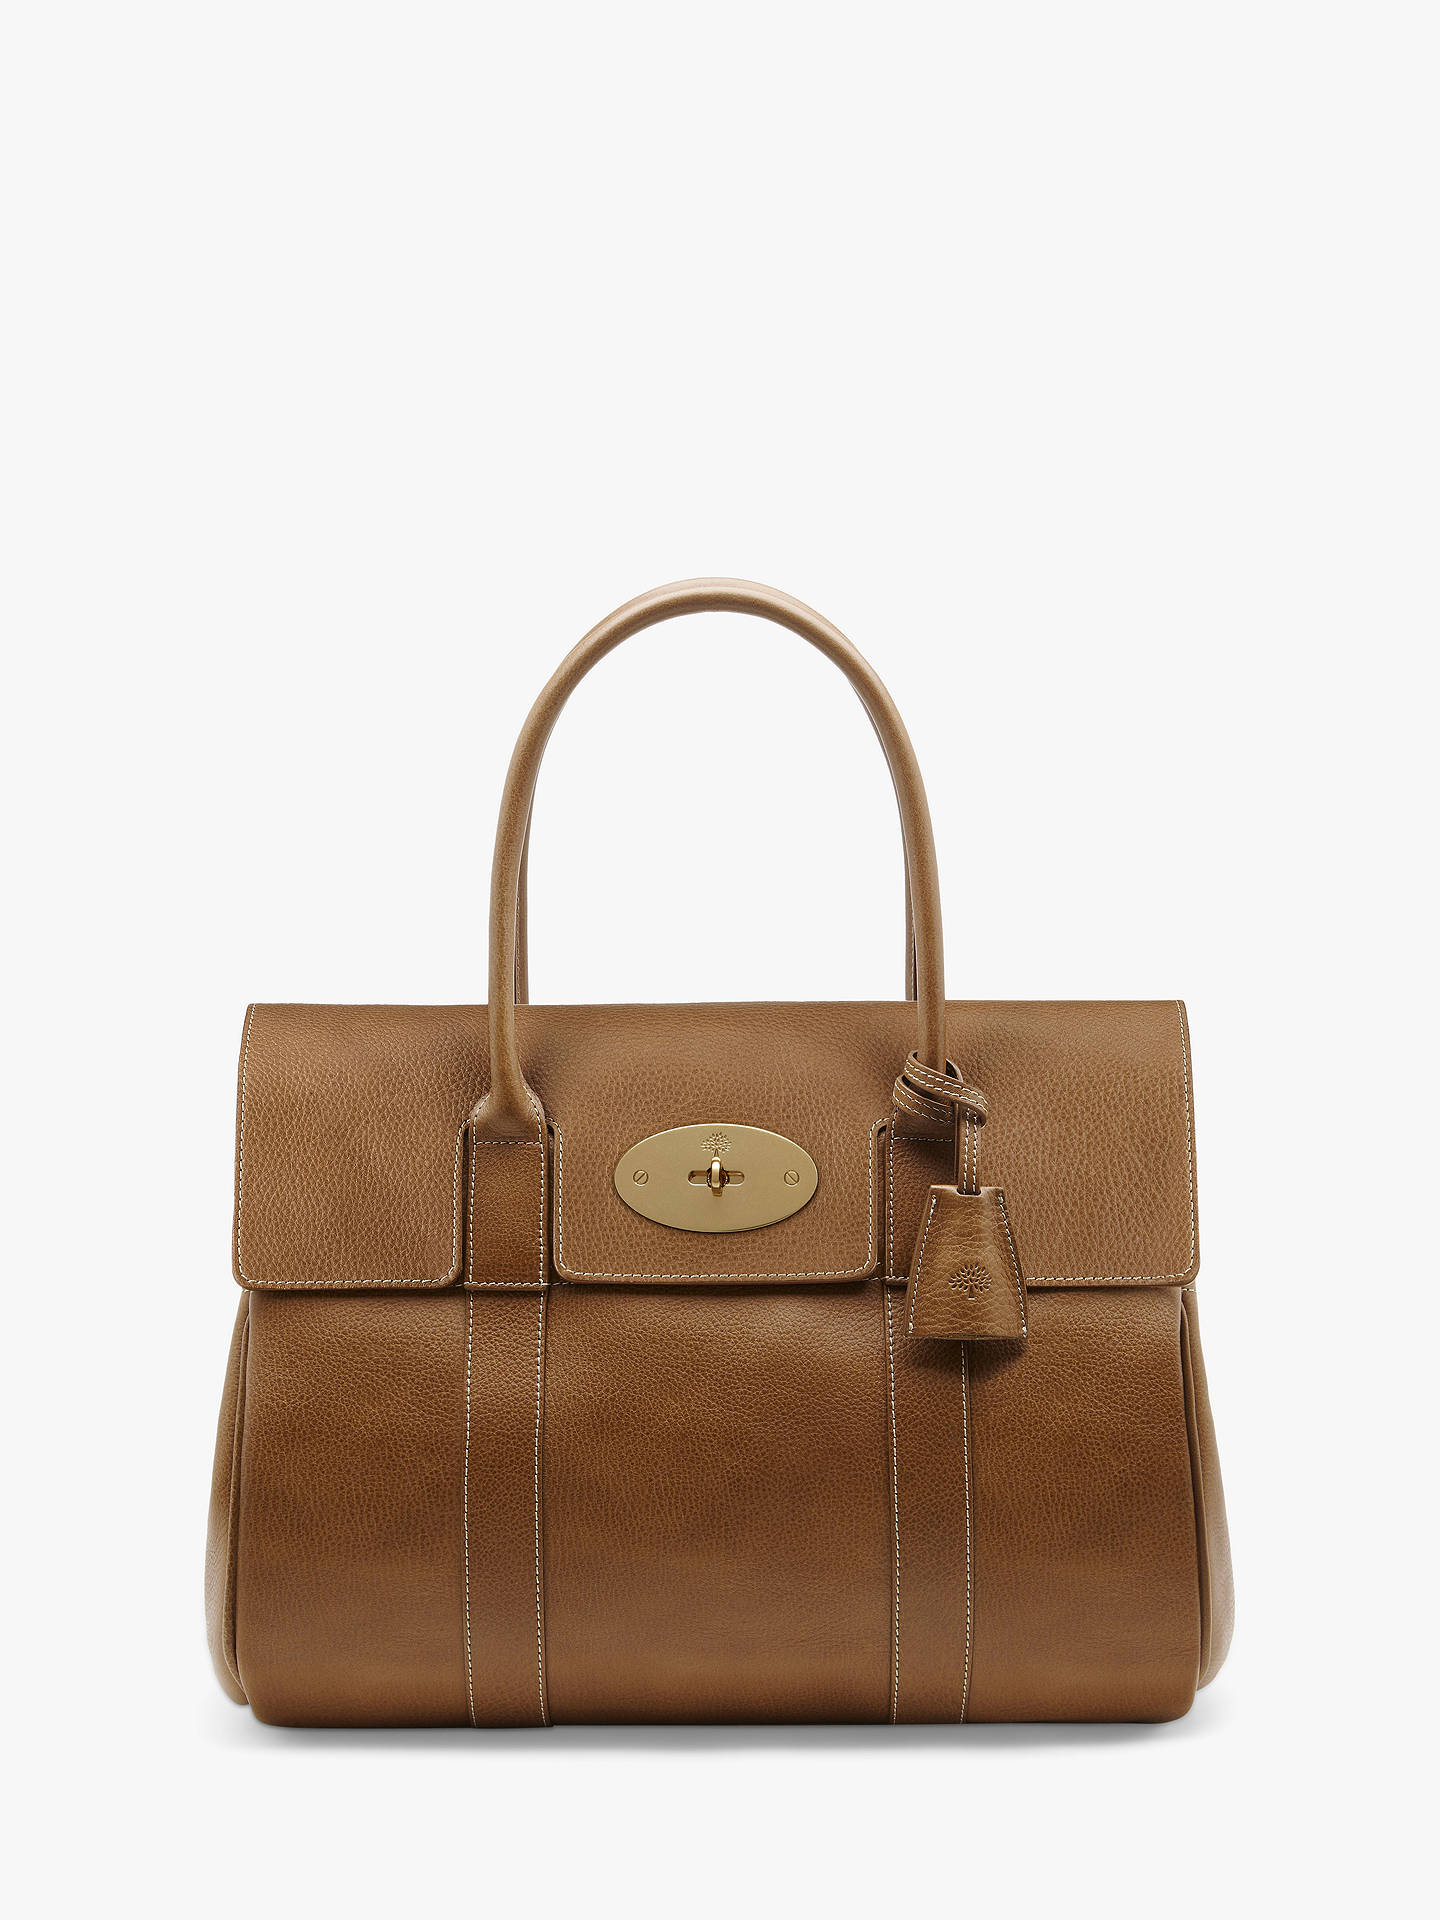 096073c6703 BuyMulberry Bayswater Heritage Natural Veg Tanned Leather Handbag,  Oak Brass Online at johnlewis.